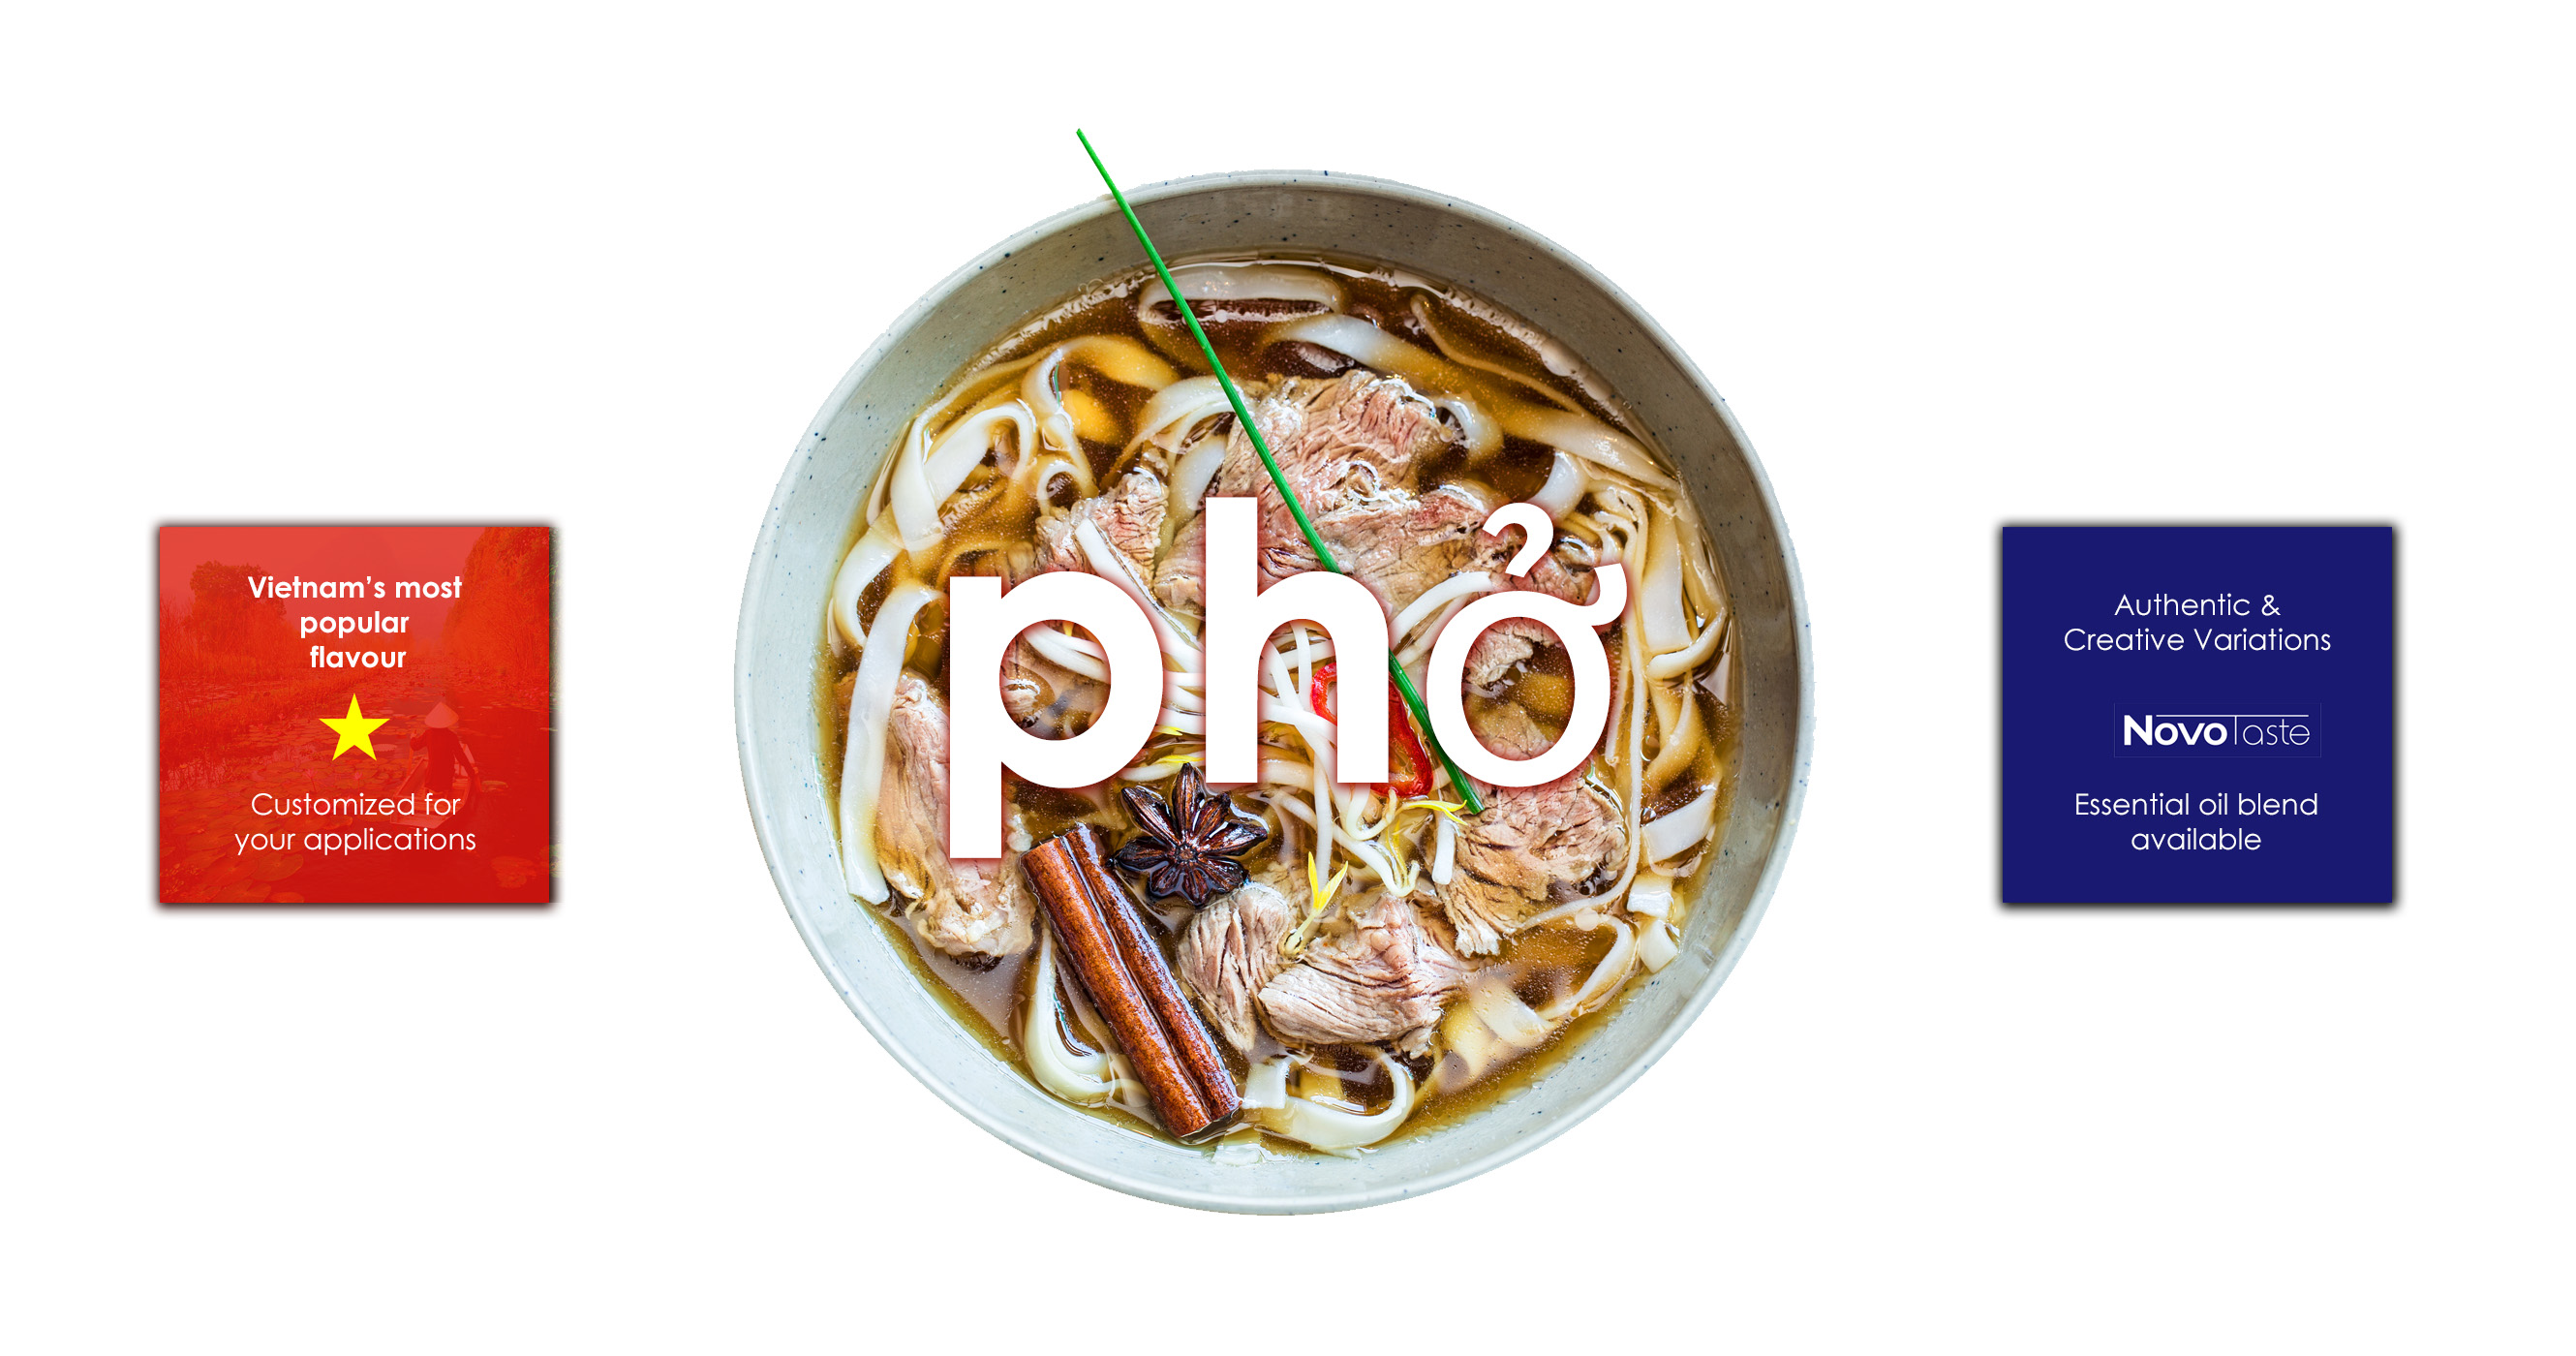 Phở | Vietnam's most popular flavour